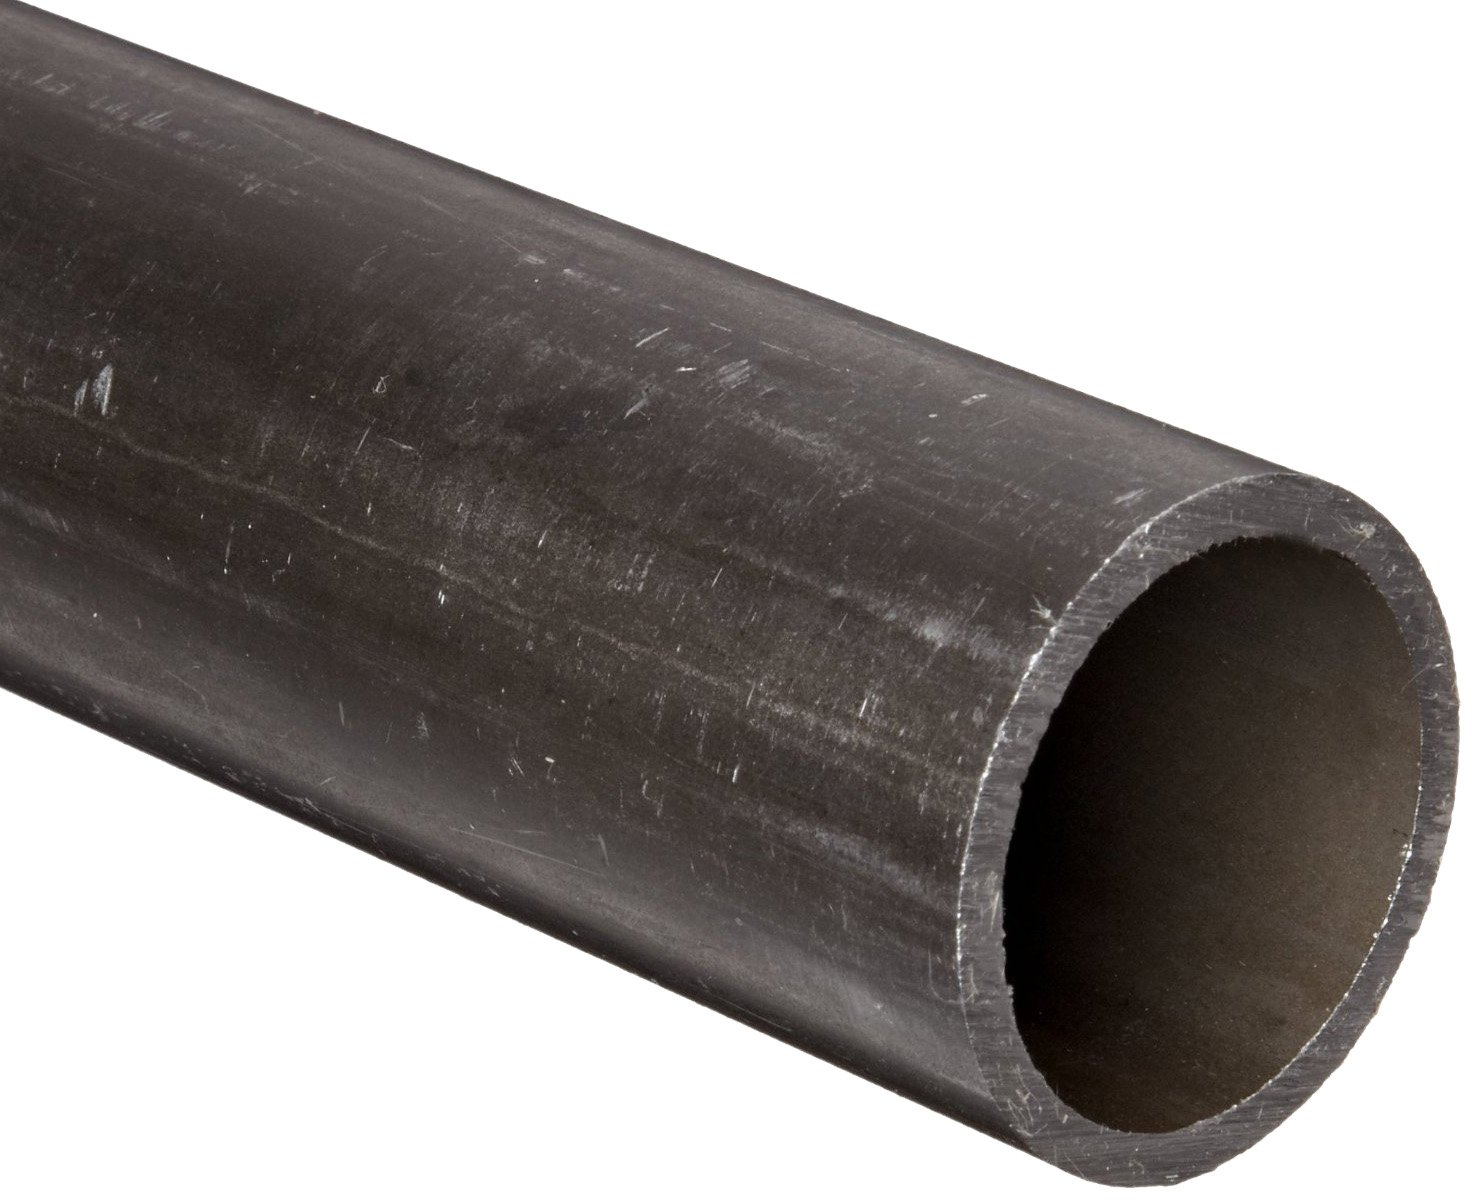 Cold Rolled Steel A513 Drawn Over Mandrel Round Tubing, ASTM A513, 1-1/4